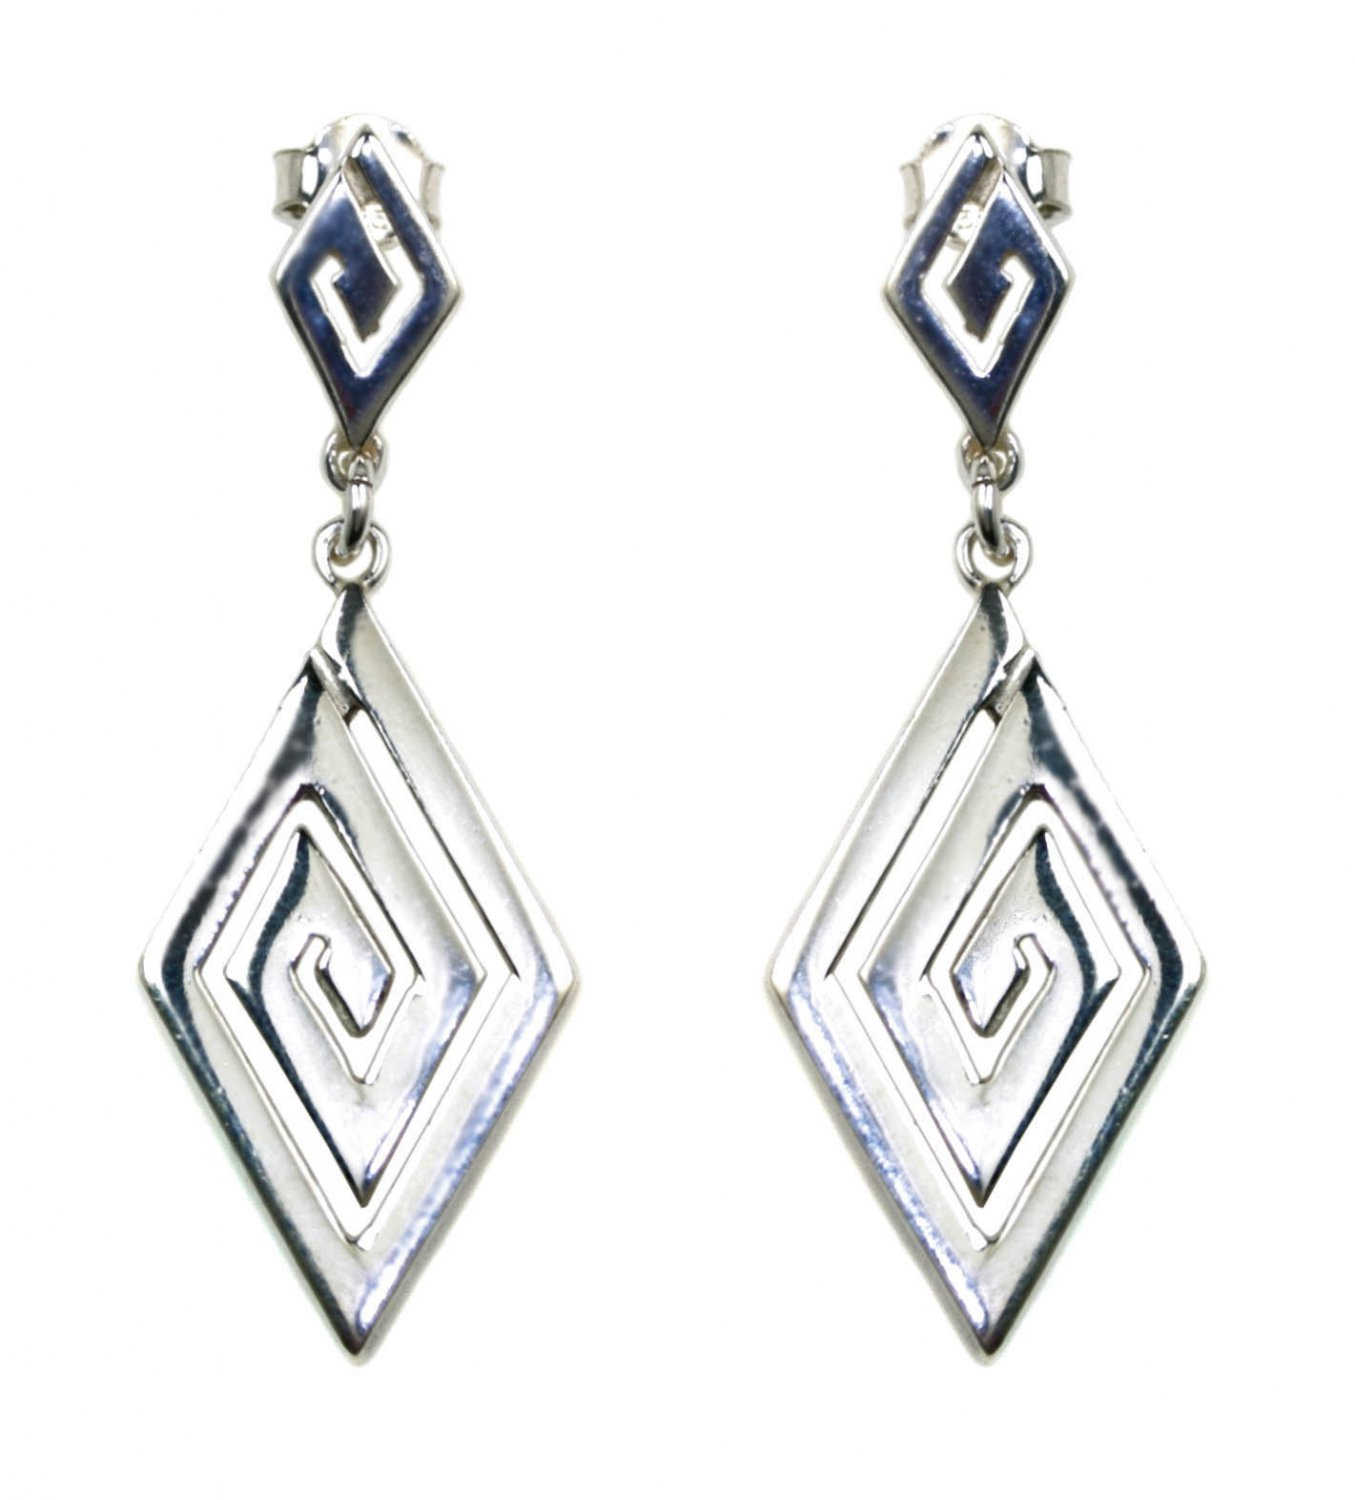 Meander-Greek Key - Sterling Silver Dangle Earrings